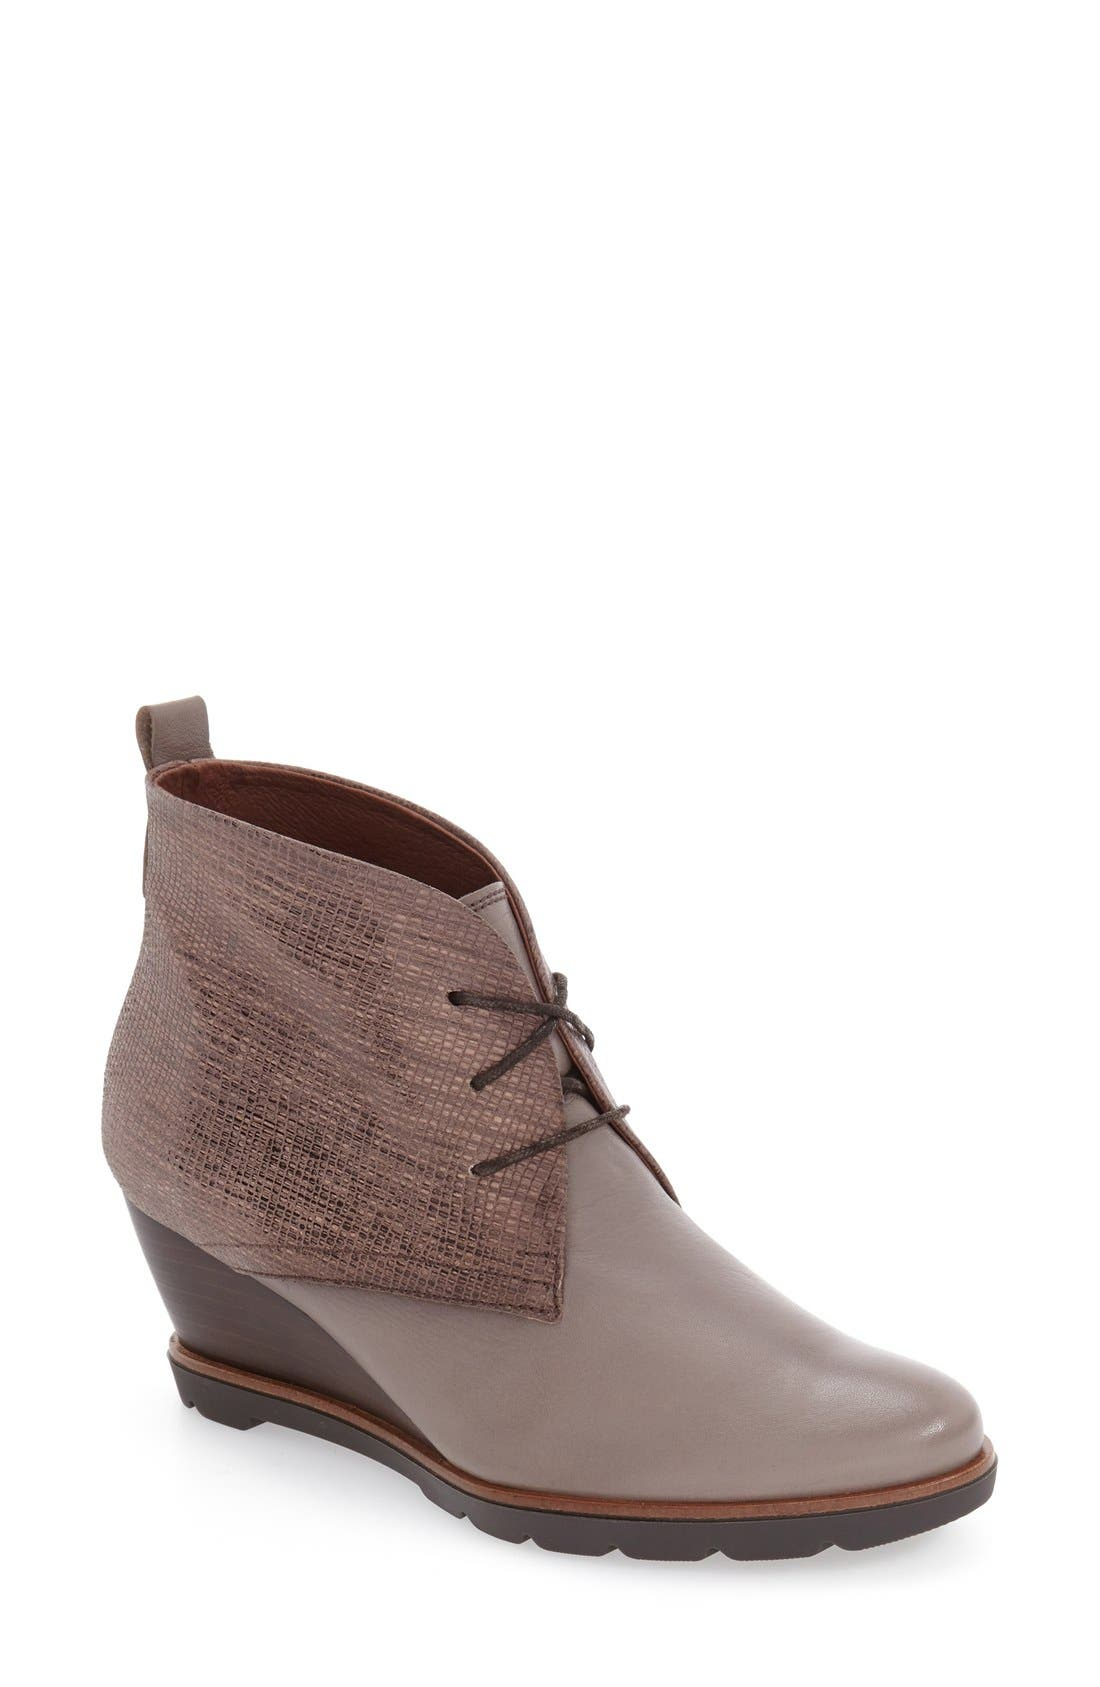 'Harmonie' Lace-Up Wedge Bootie,                             Main thumbnail 1, color,                             Brown Leather